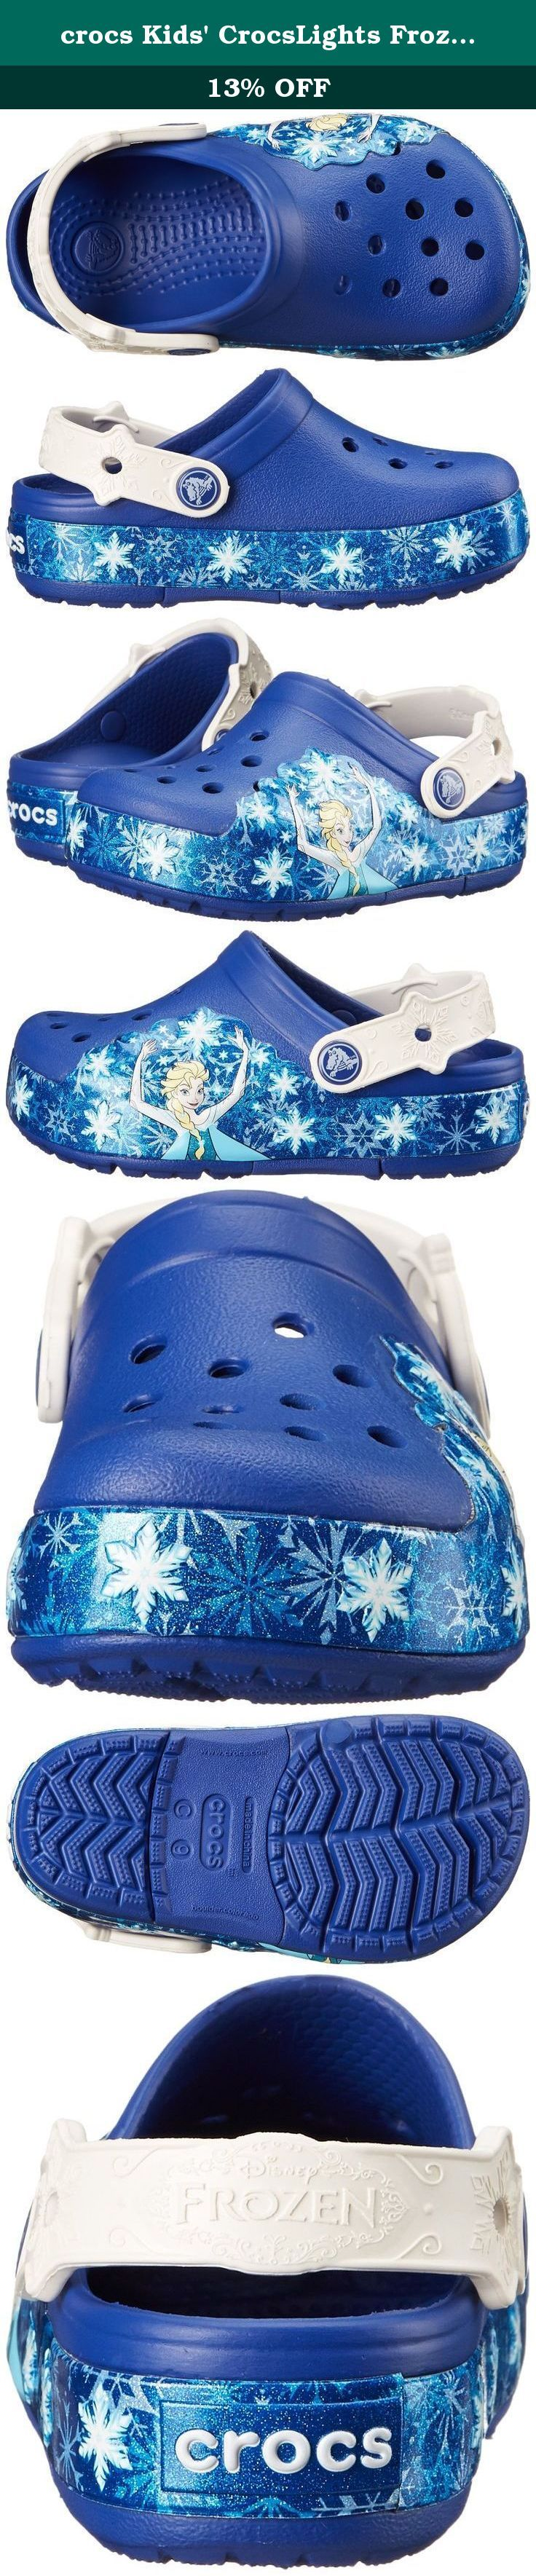 "crocs Kids' CrocsLights Frozen Light-Up Clog (Toddler/Little Kid), Cerulean Blue/Oyster, 9 M US Toddler. Lights up with each step! Crosliteâ""¢ upper with Frozen® Elsaâ""¢ graphics. Easy slip-on style with adjustable heel strap. Crosliteâ""¢ footbed for all-day cushion and comfort. Crosliteâ""¢ outsole for a pleasurable walking experience."